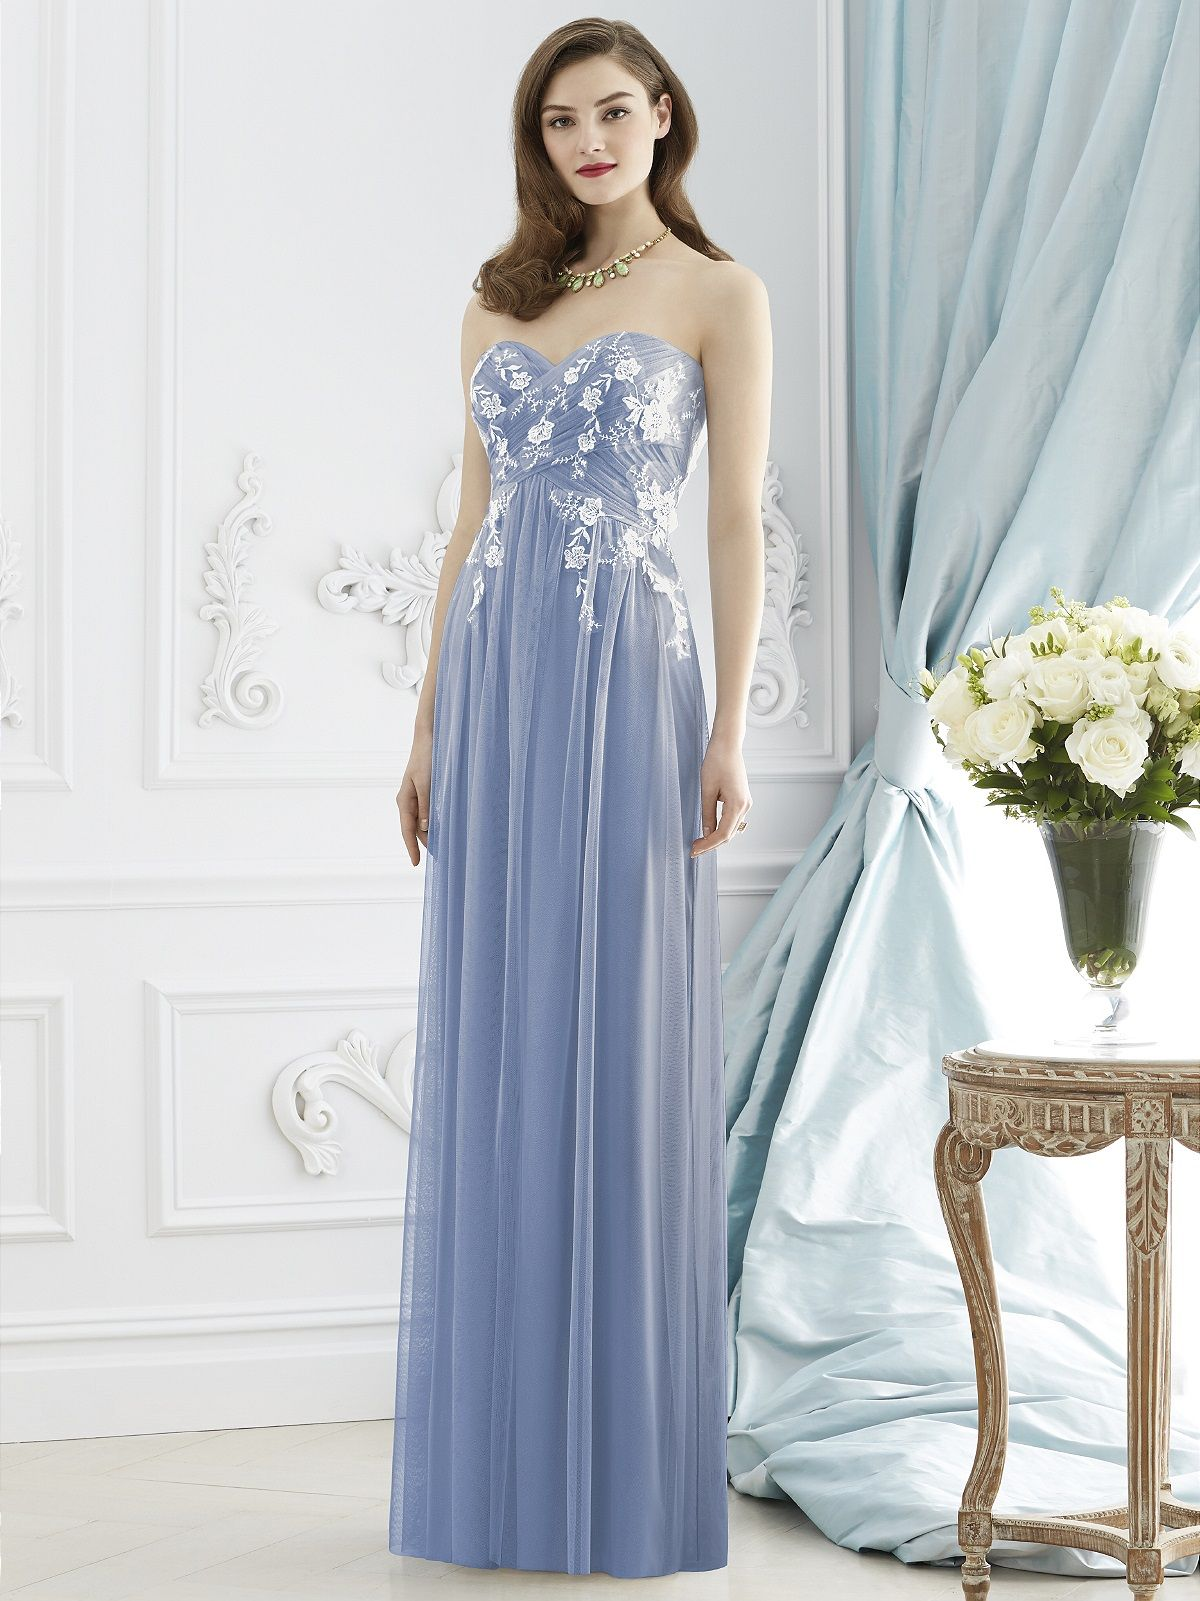 Dessy collection style 2948 periwinkle bridesmaid dresses dessy collection style 2948 bridesmaid ideasbridesmaidsbridesmaid dressespink weddingsperiwinkle bluegown ombrellifo Images